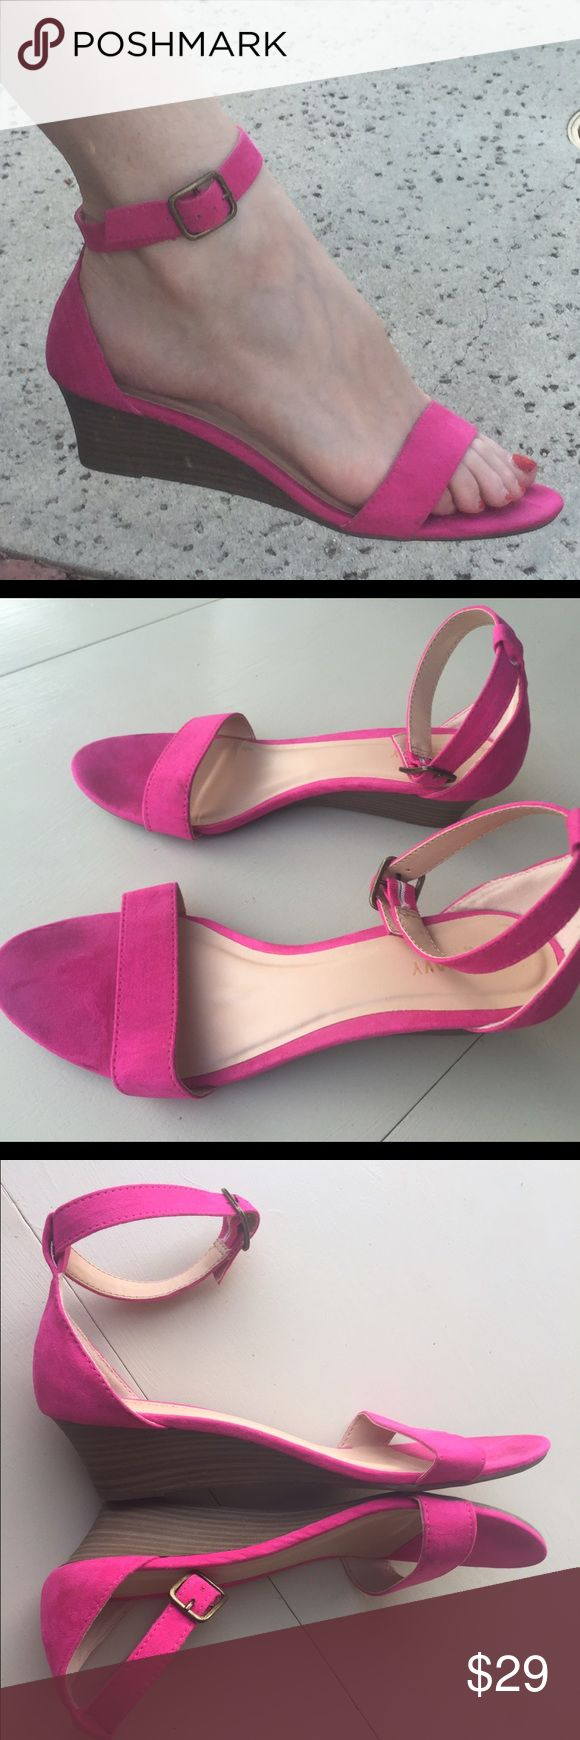 1000 ideas about pink wedges on pink